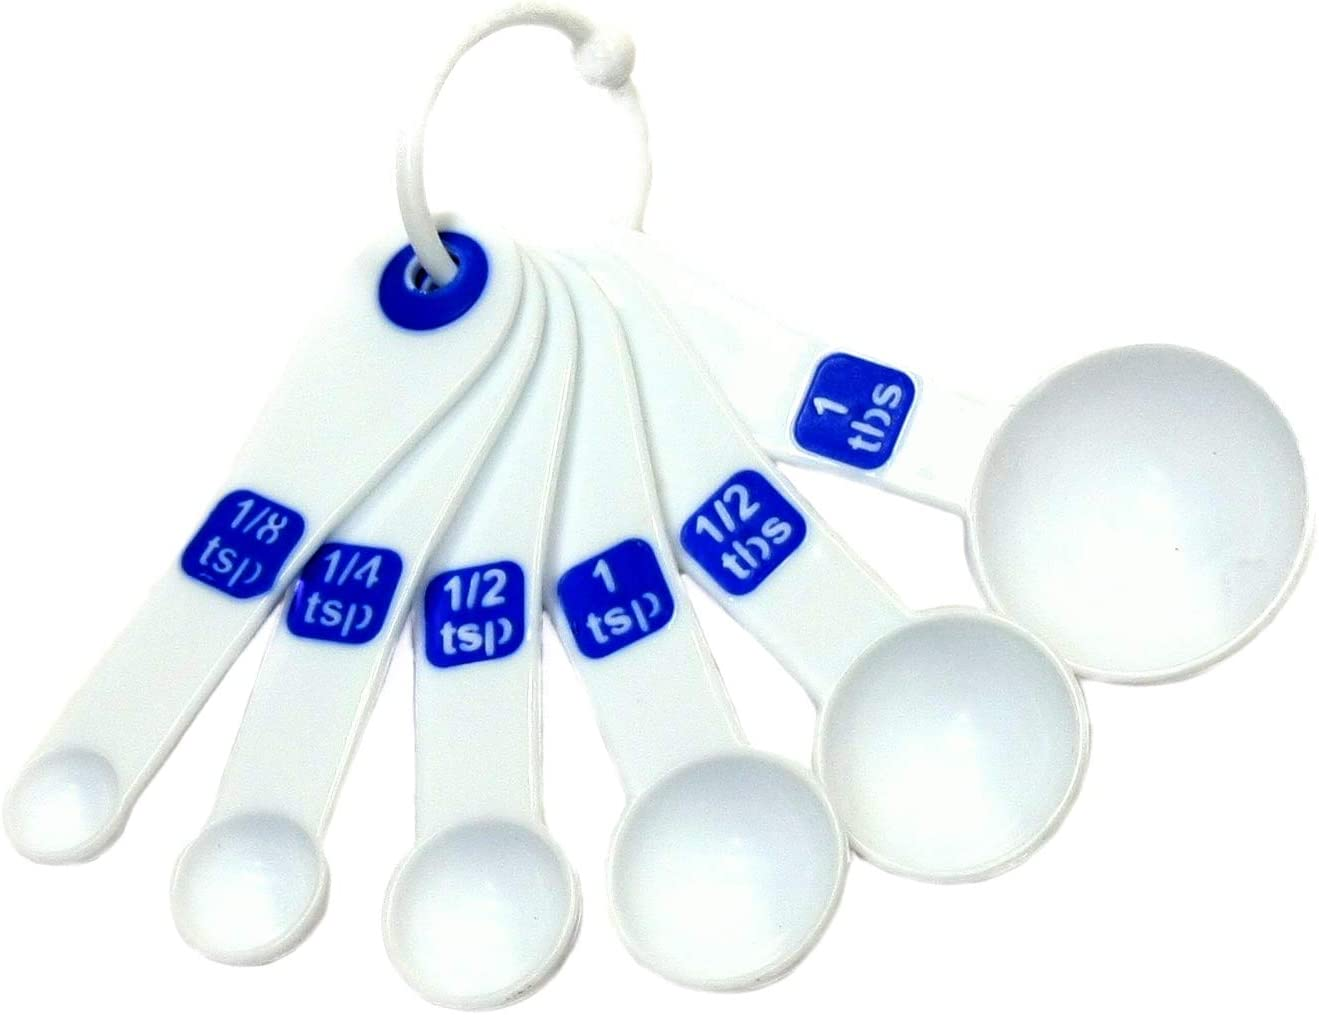 Chef Craft Max 60% OFF Select Plastic 6 Piece Spoon Measuring tsp 1 Set 8 Ranking TOP20